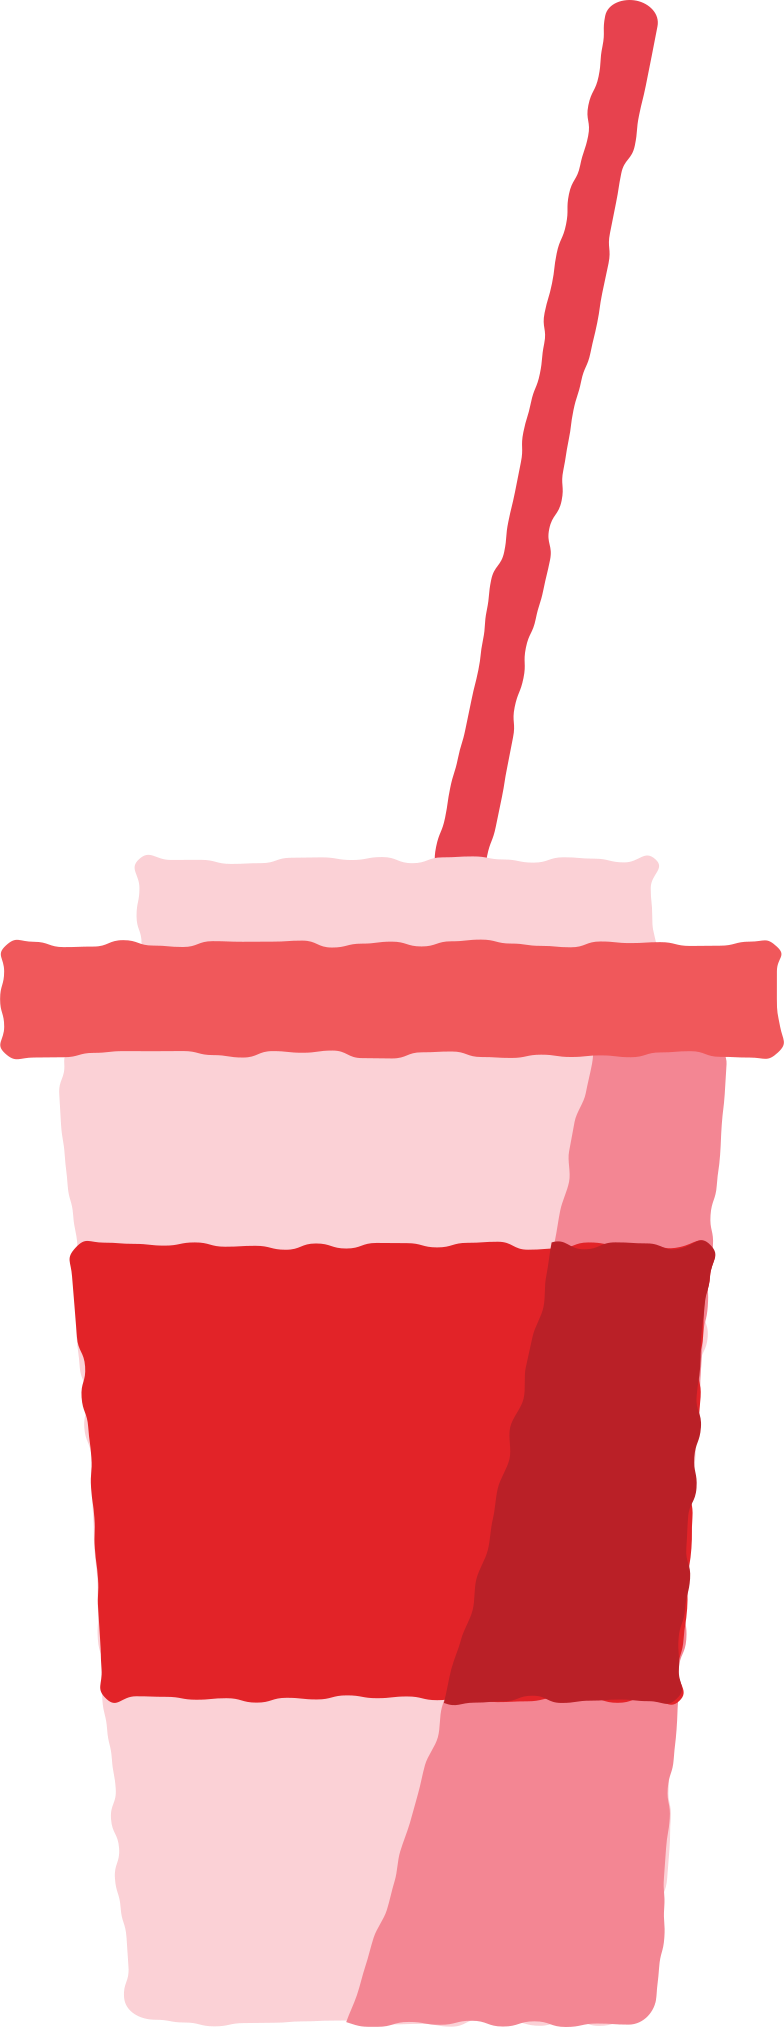 style milkshake Vector images in PNG and SVG | Icons8 Illustrations